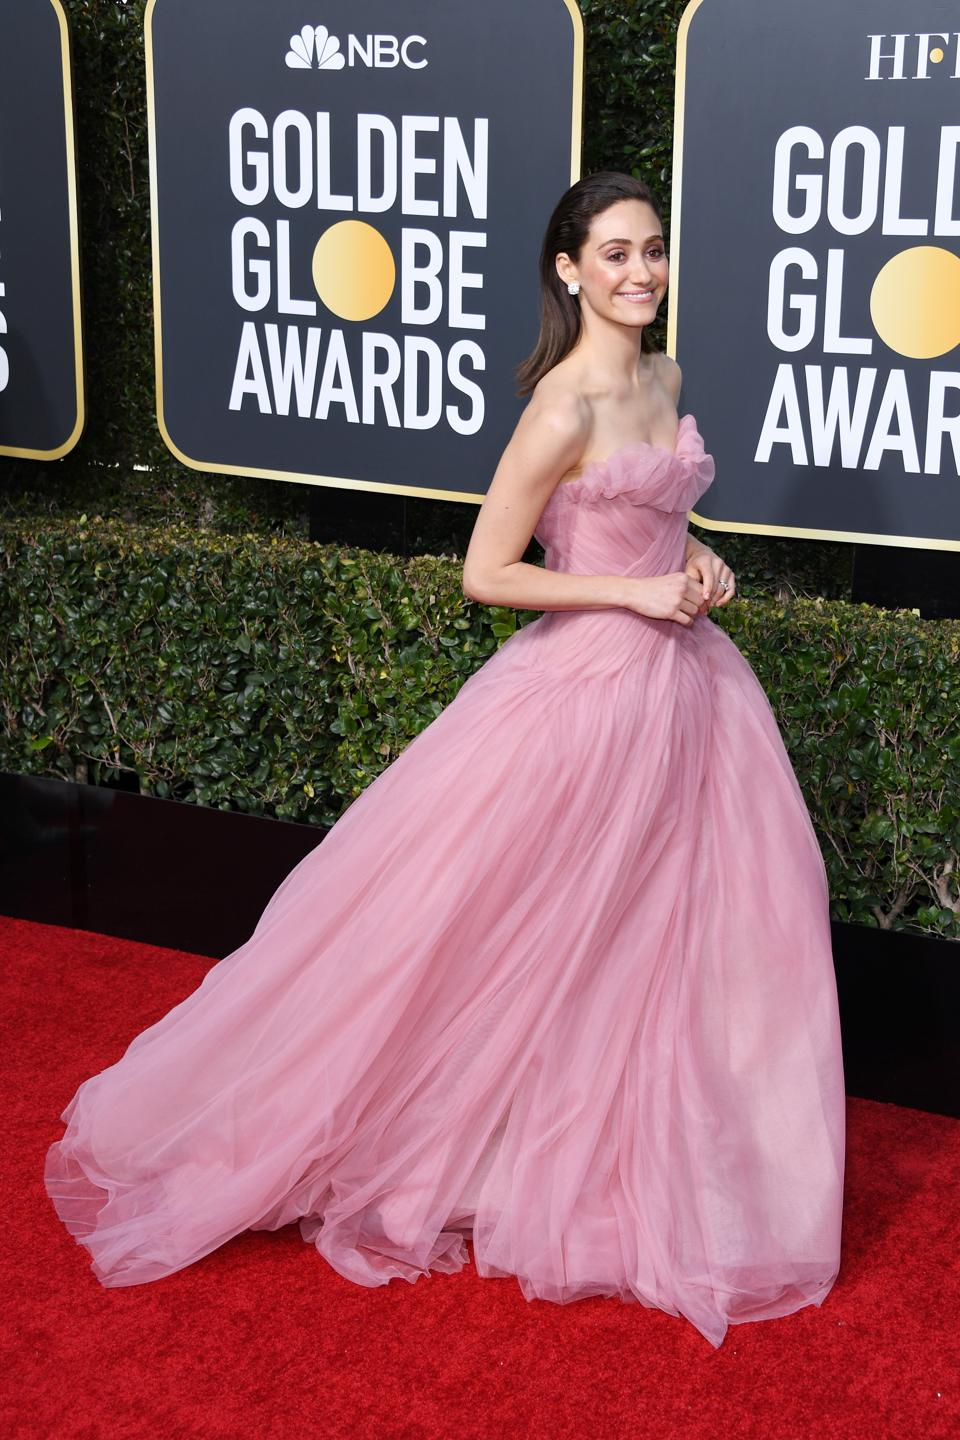 Emmy Rossum appears ethereal in Monique Lhuillier.